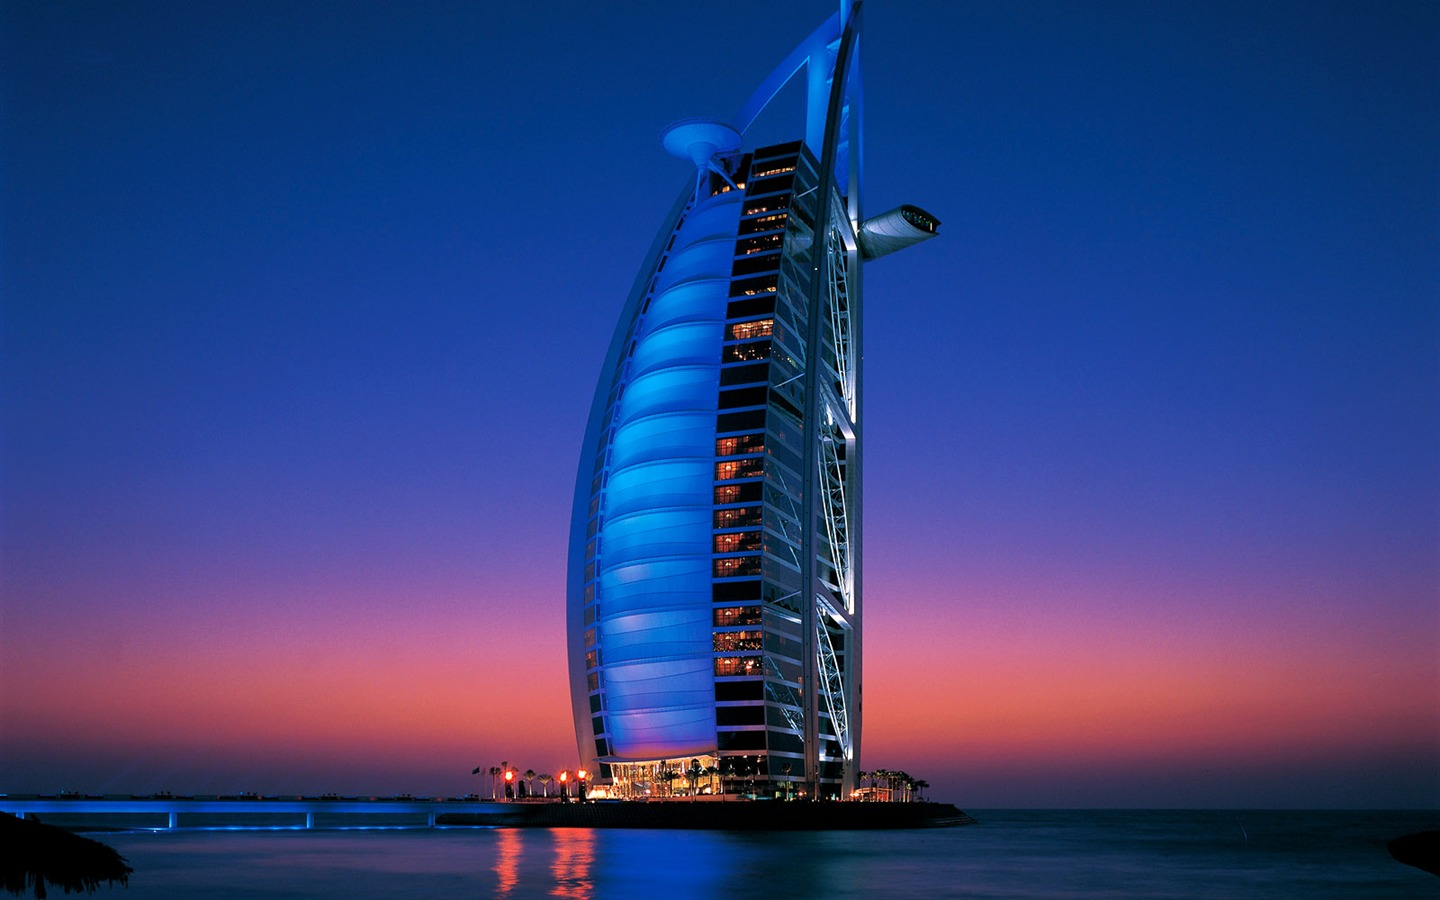 Seven Star Hotel Burj Dubai Wallpapers 5 1440x900